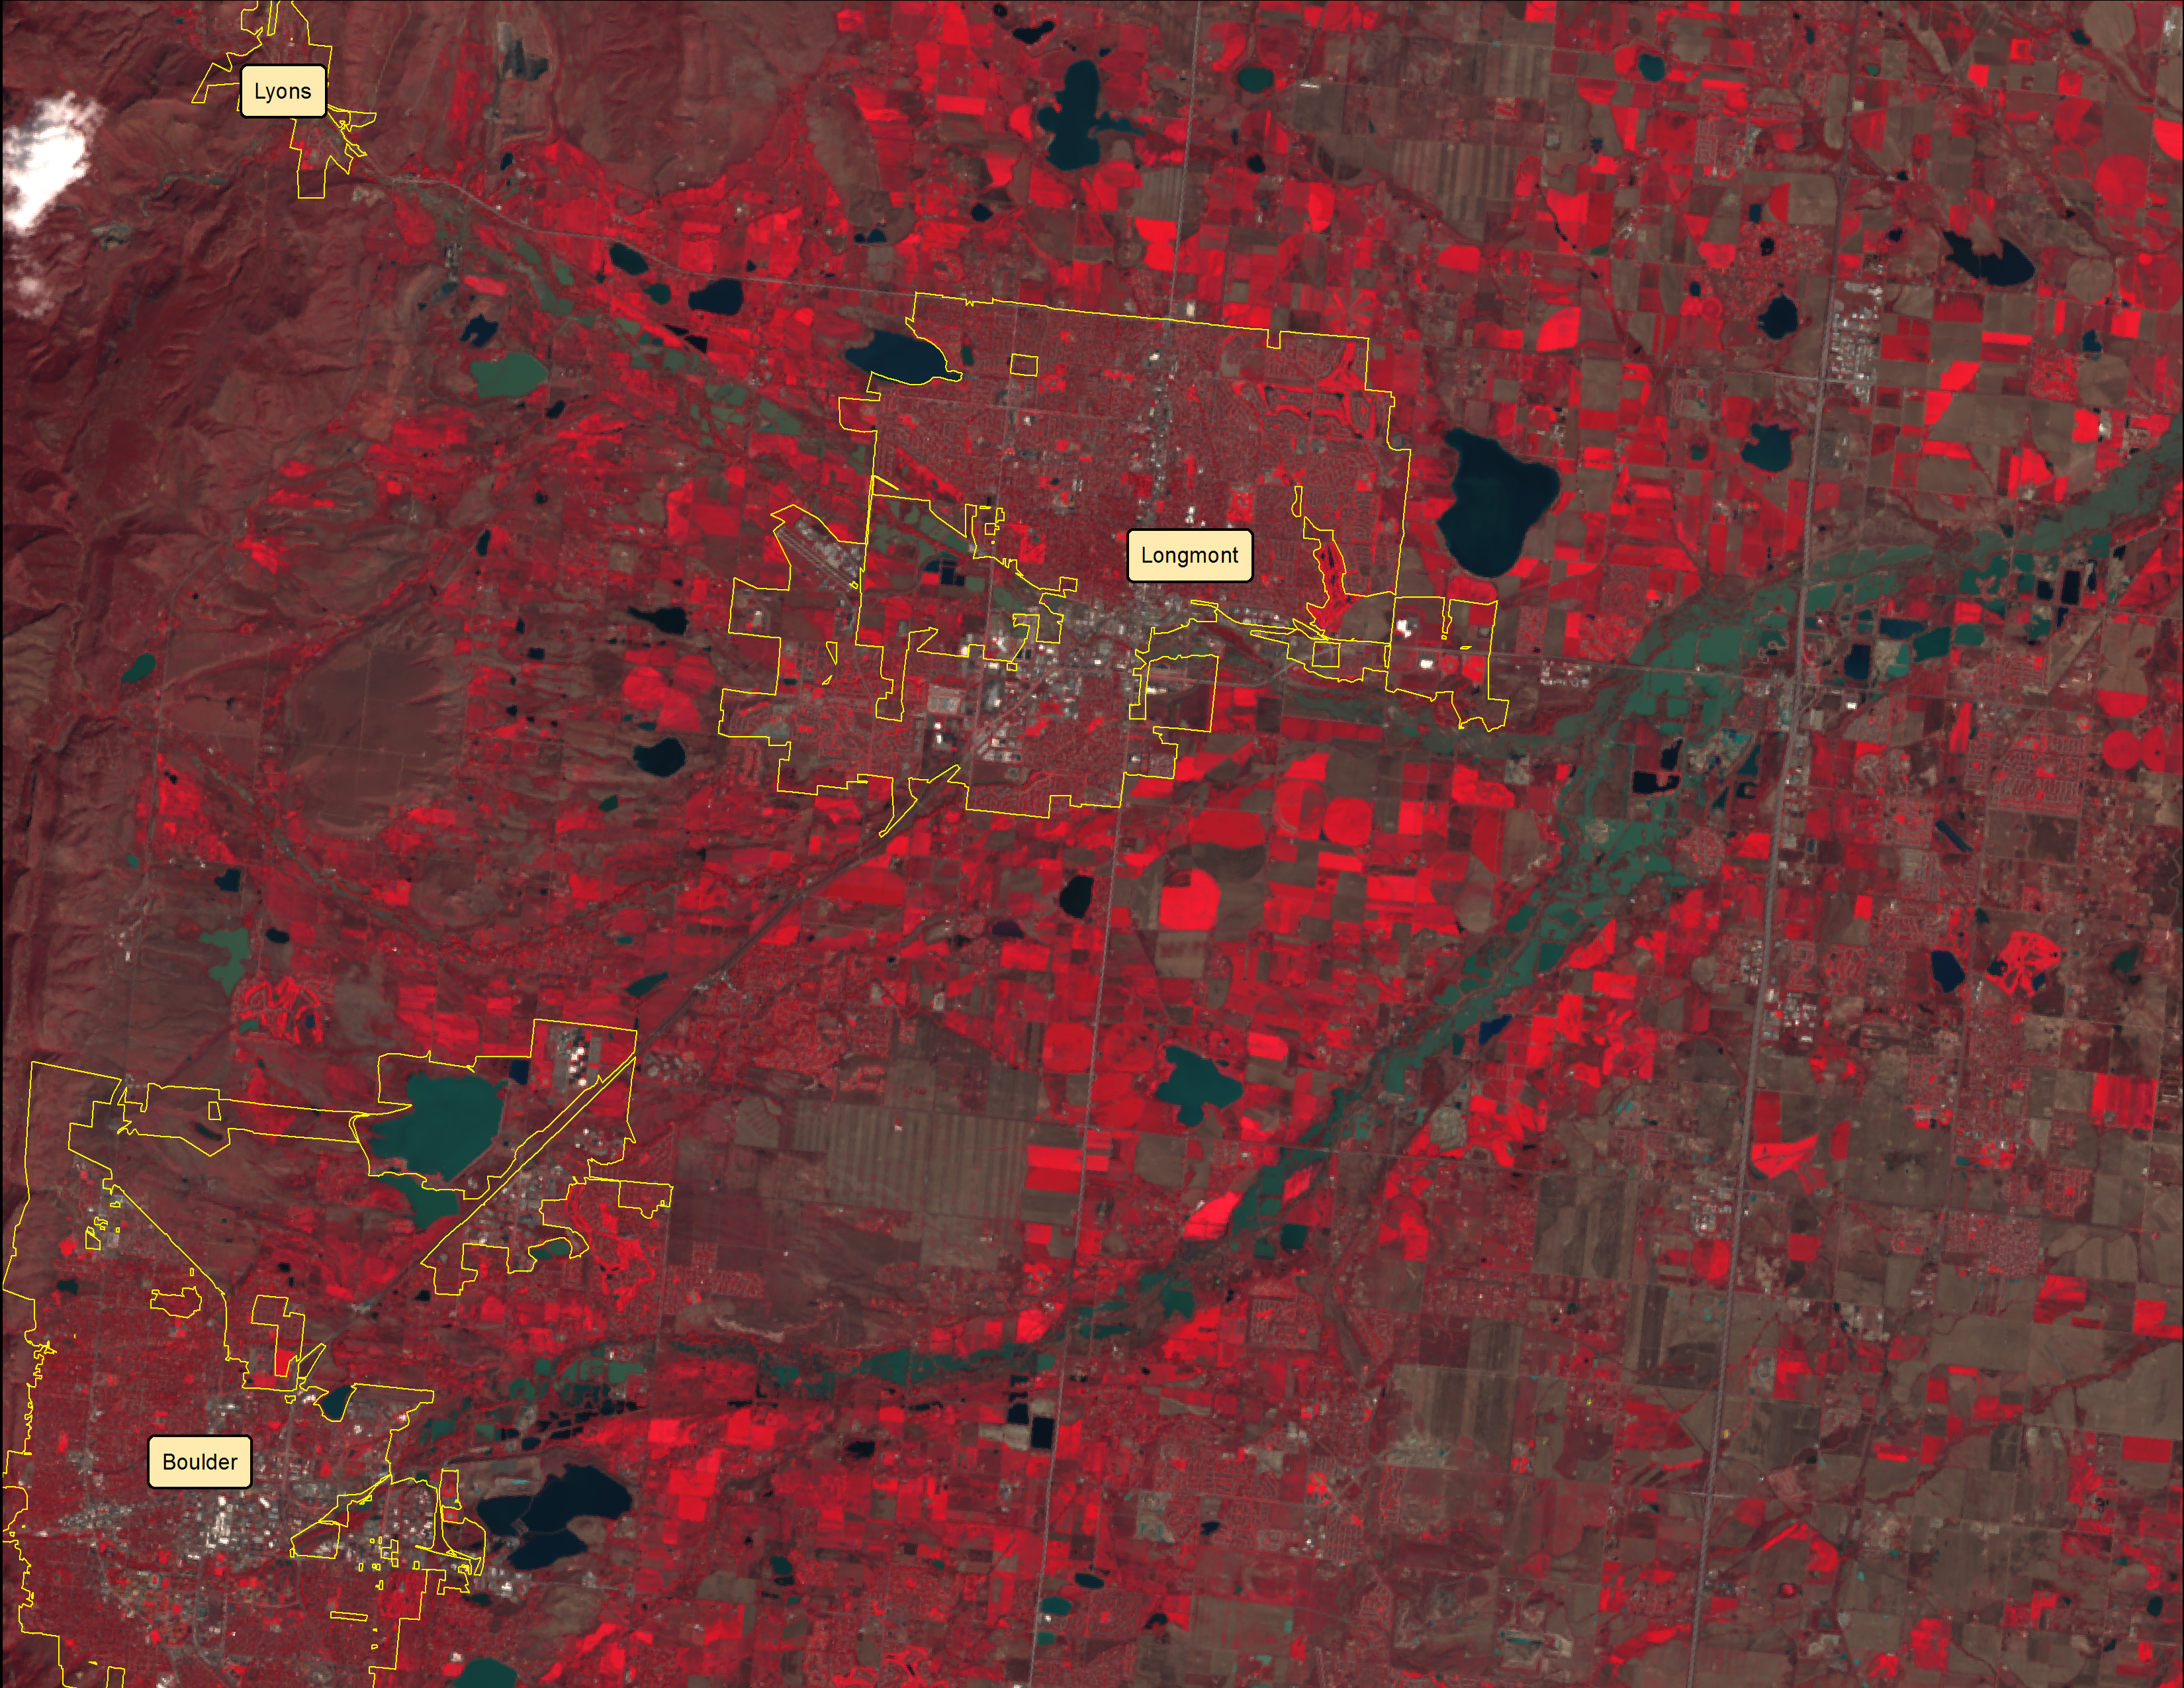 Recent Landsat-8 Imagery from the Colorado Floods – The Wide